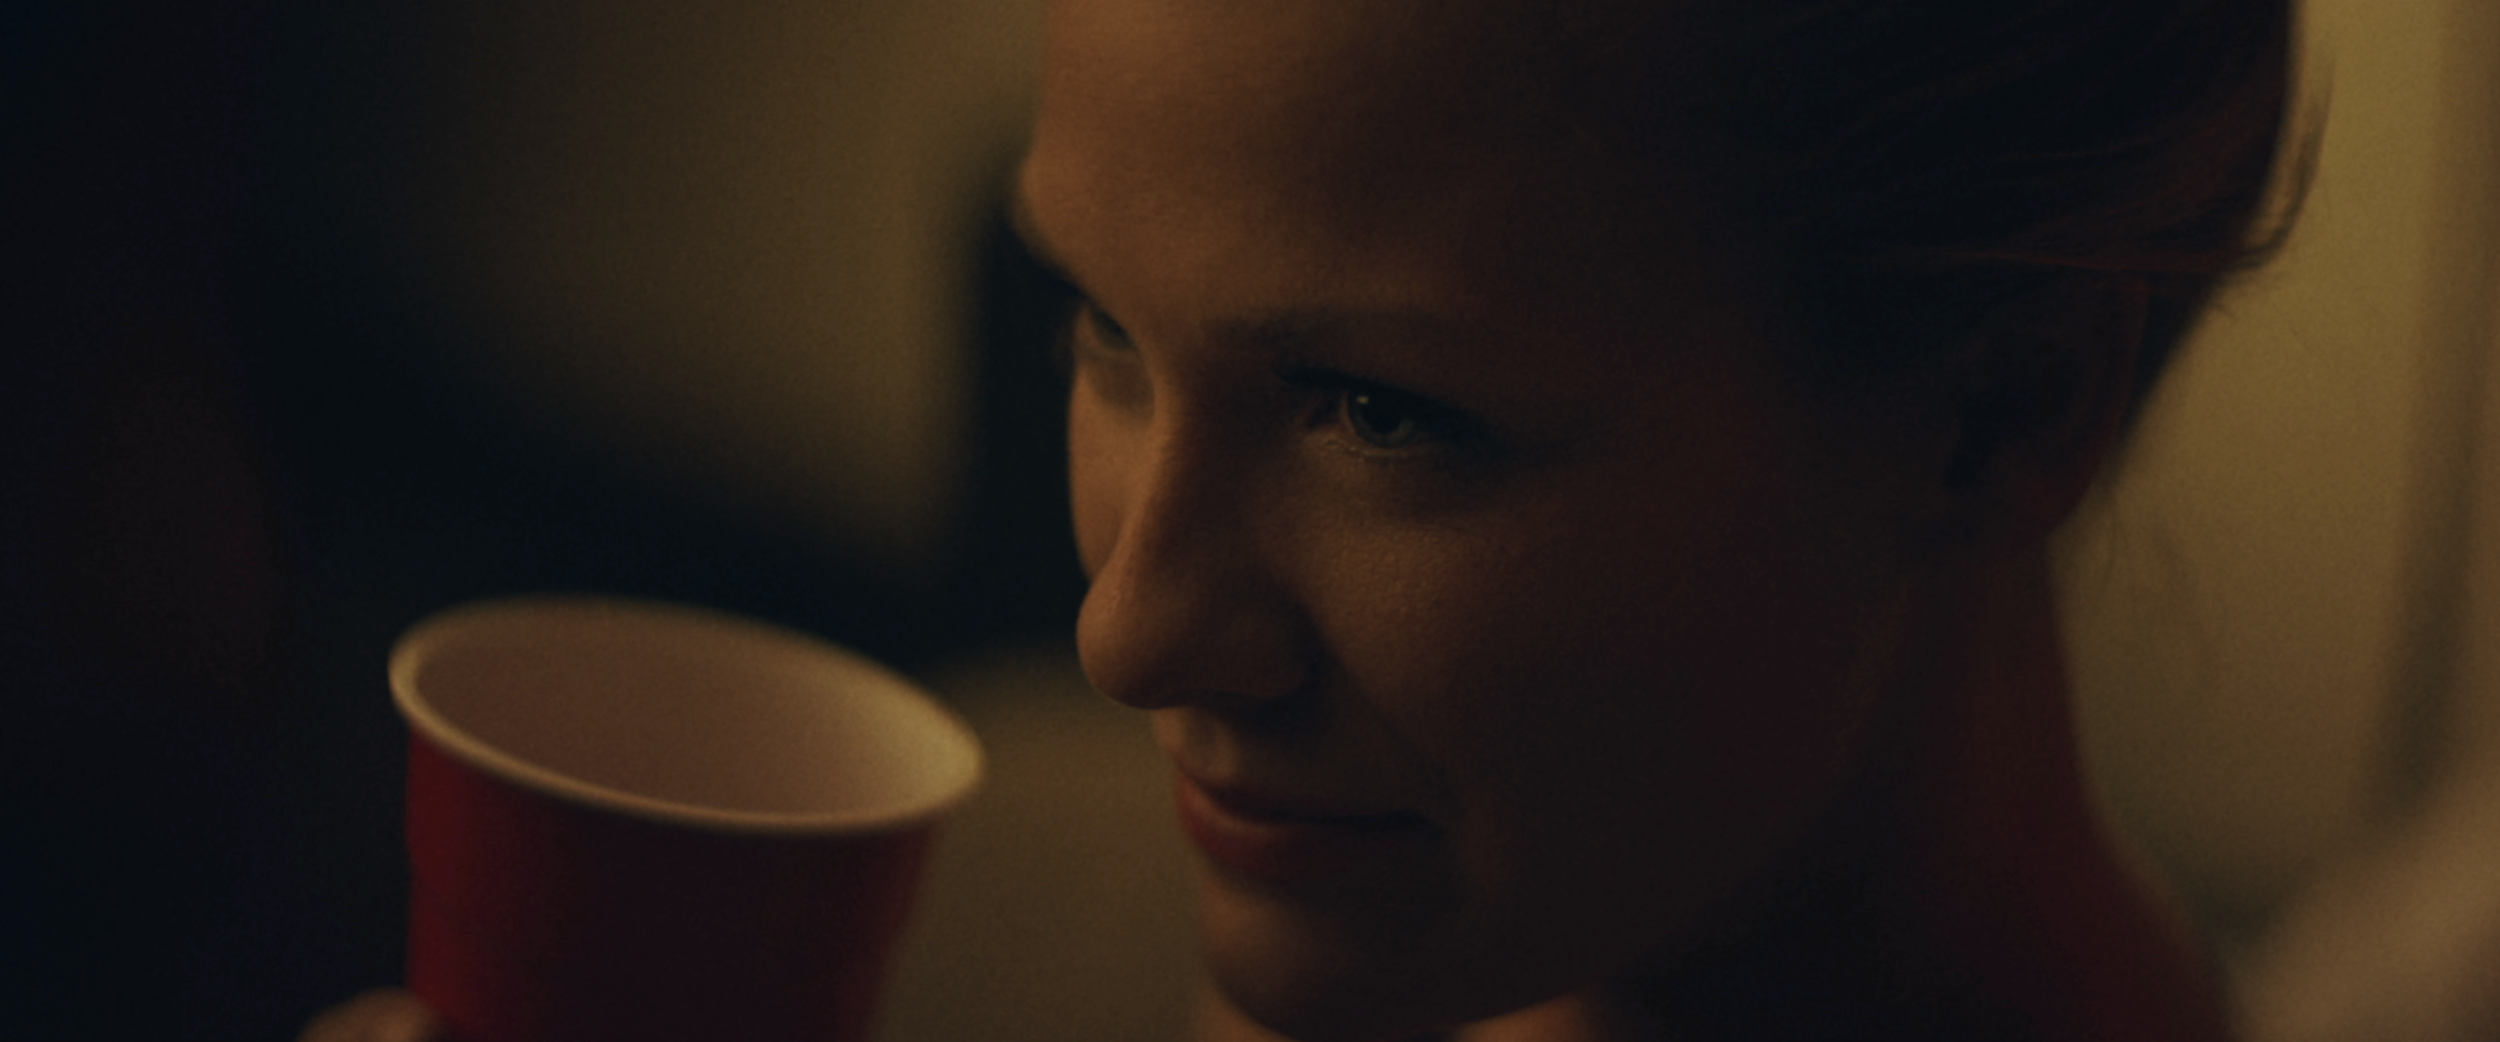 ChrisJanson-DrunkGirl_MASTER-COLOR-01_mov 27.png